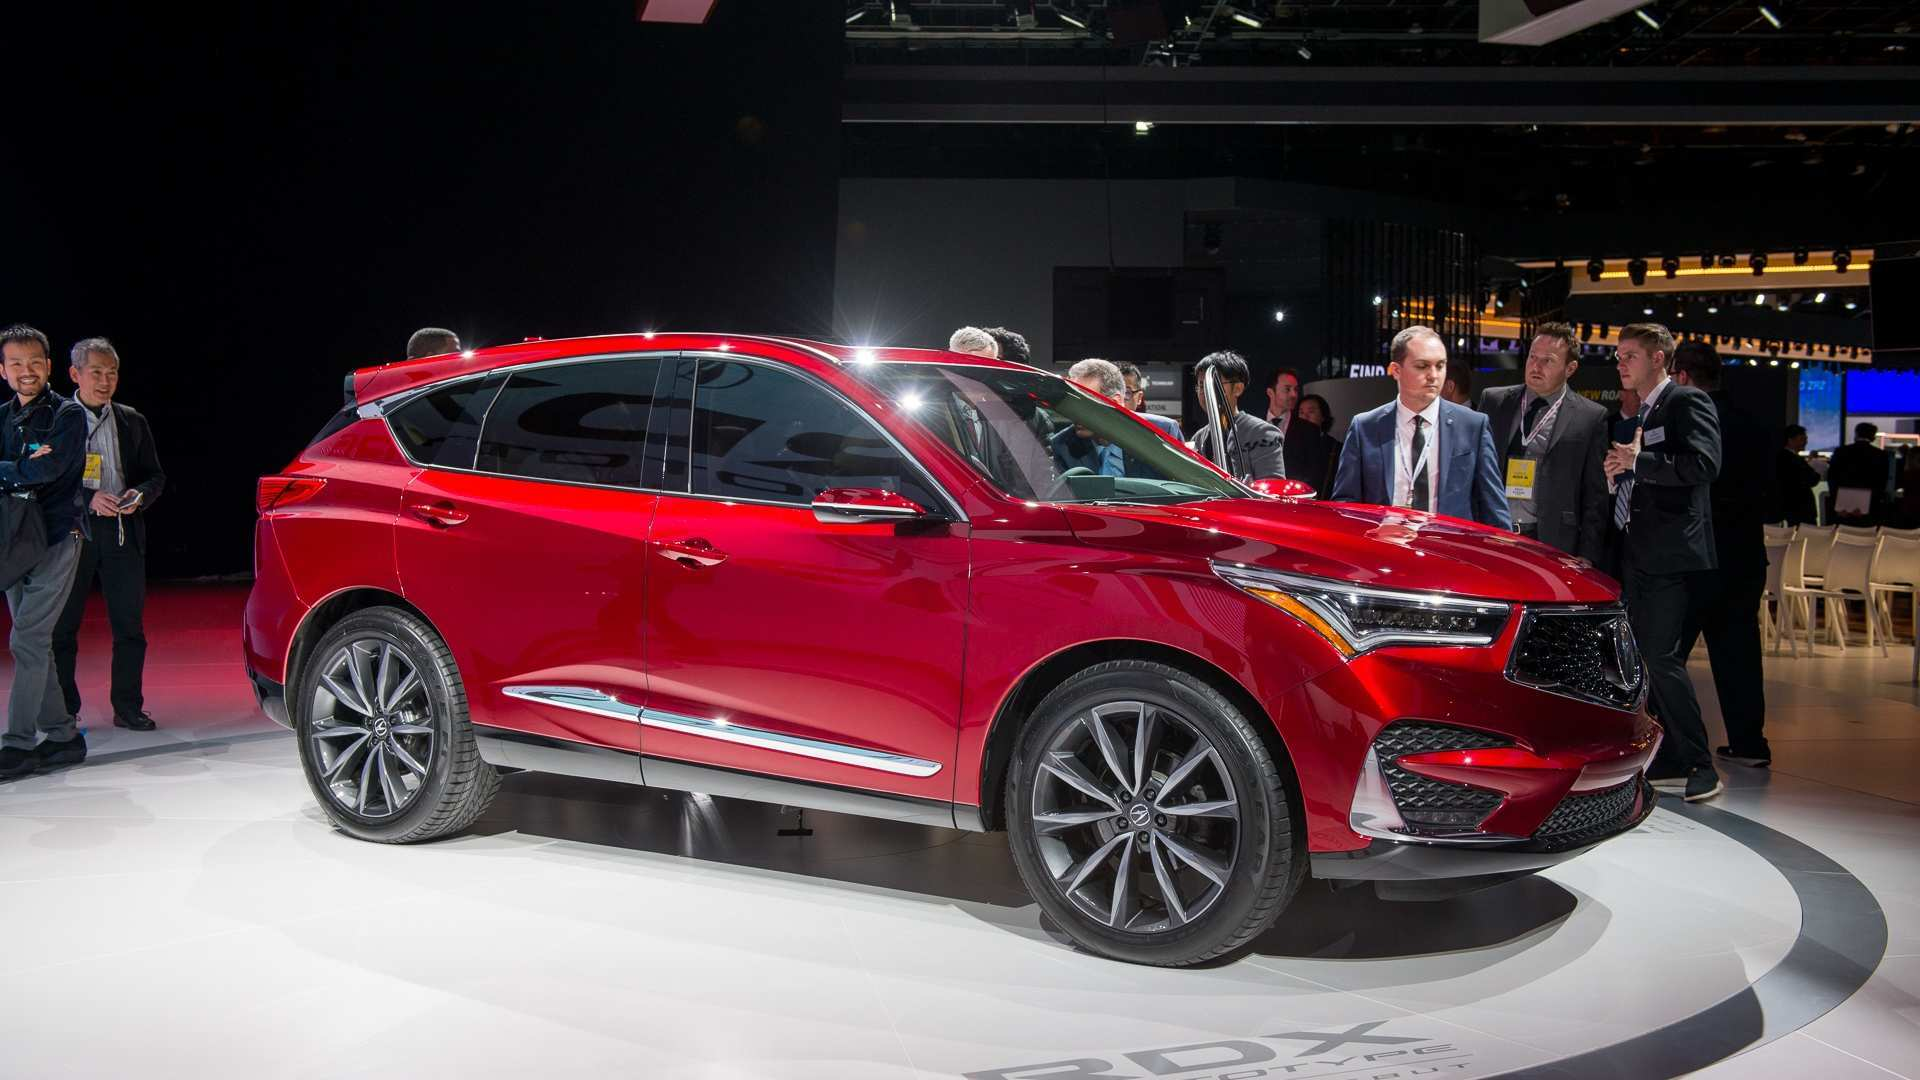 83 All New New Acura Rdx 2019 Exterior Colors Spy Shoot Wallpaper by New Acura Rdx 2019 Exterior Colors Spy Shoot